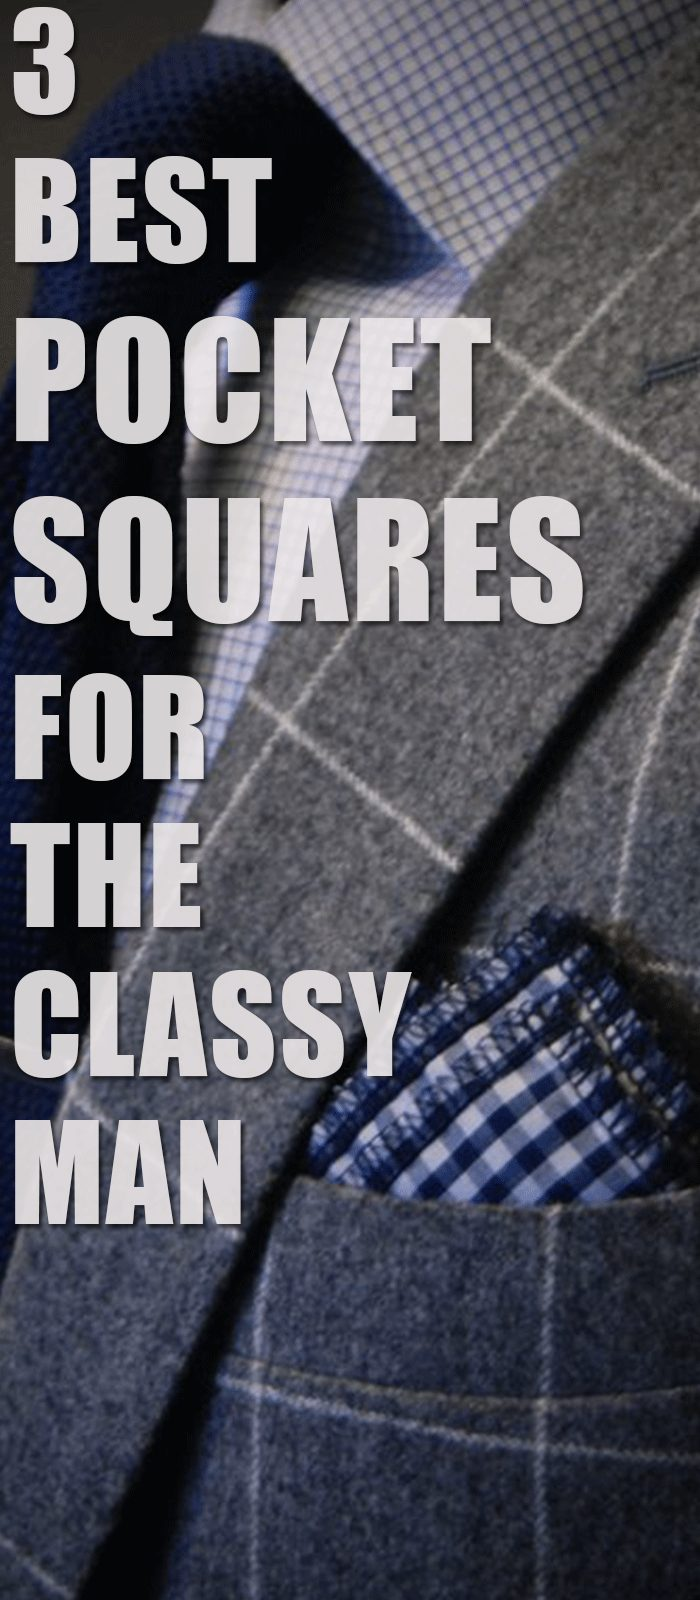 Pocket Squares For The Classy Man